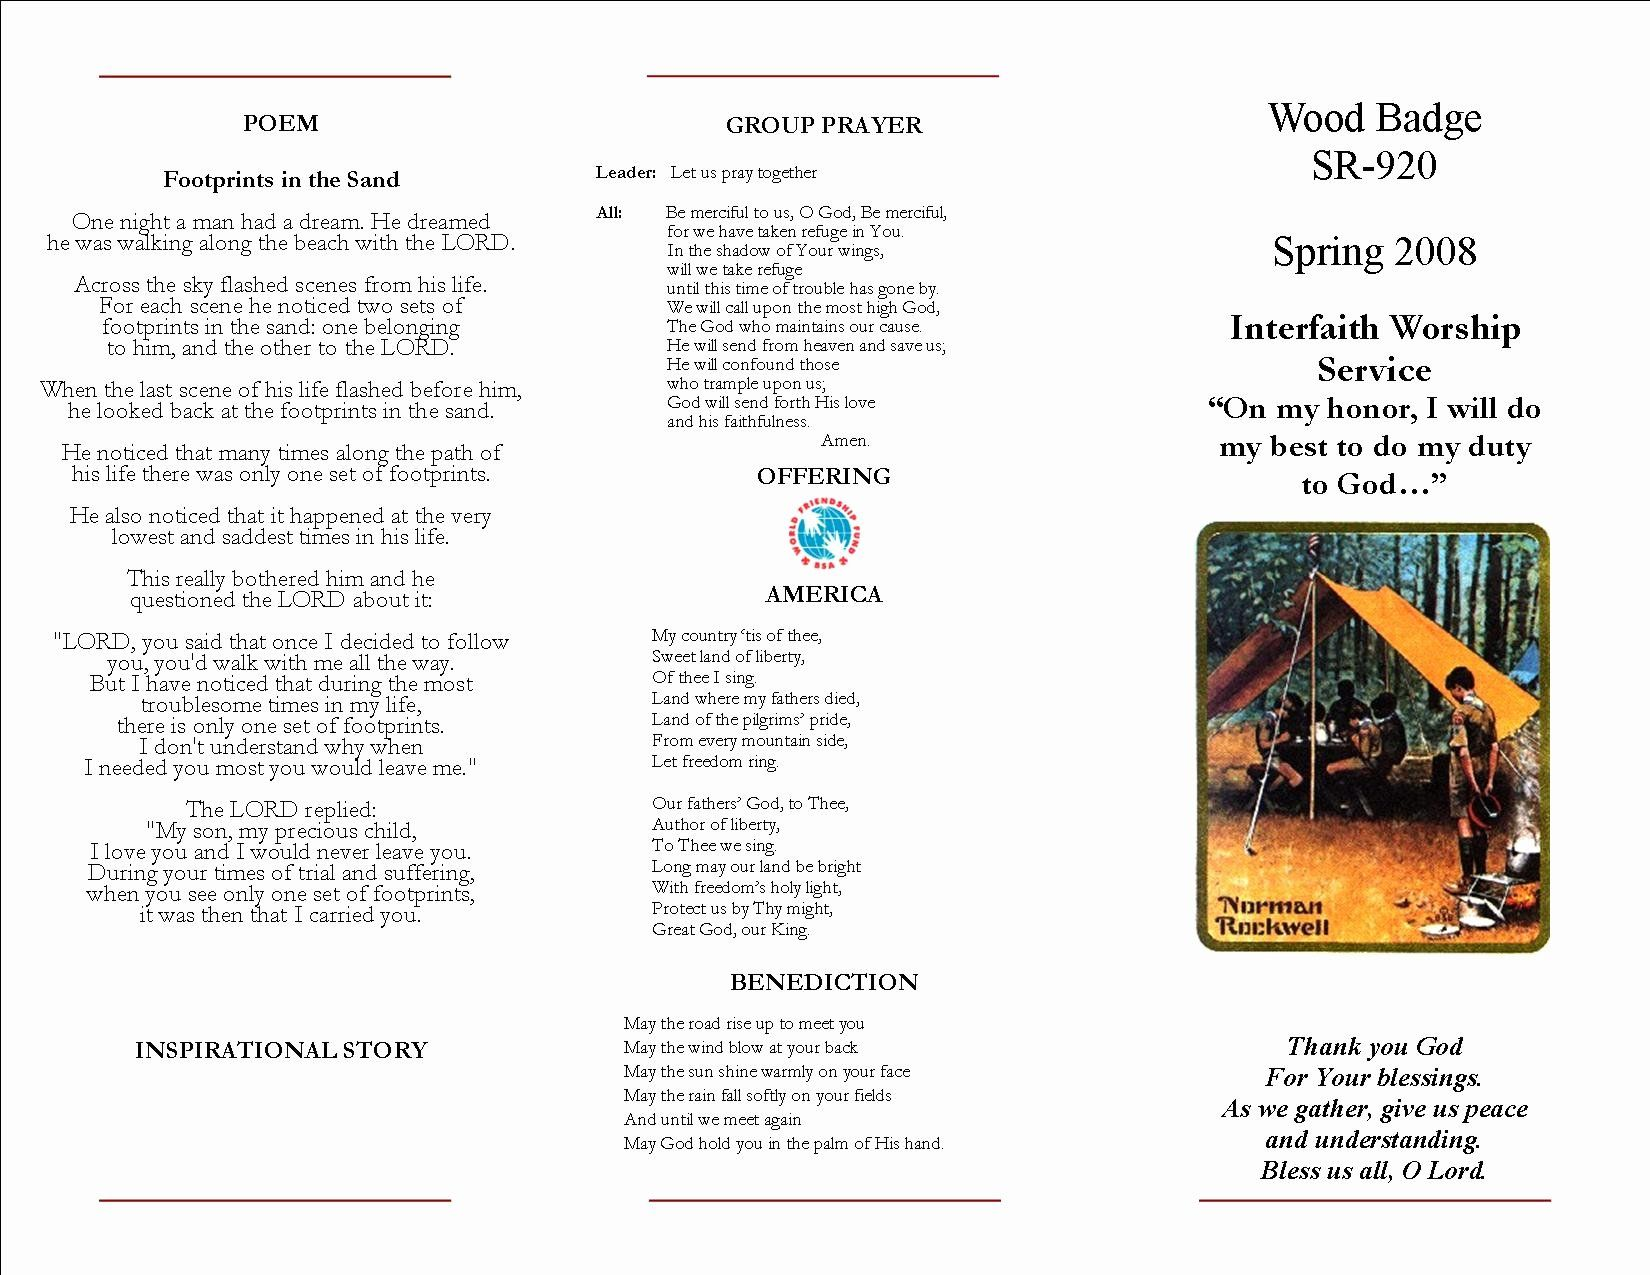 Worship Service Planning Template New Sample Boy Scout Interfaith Worship Simple Business Plan Template Business Plan Template Word Business Plan Template Free